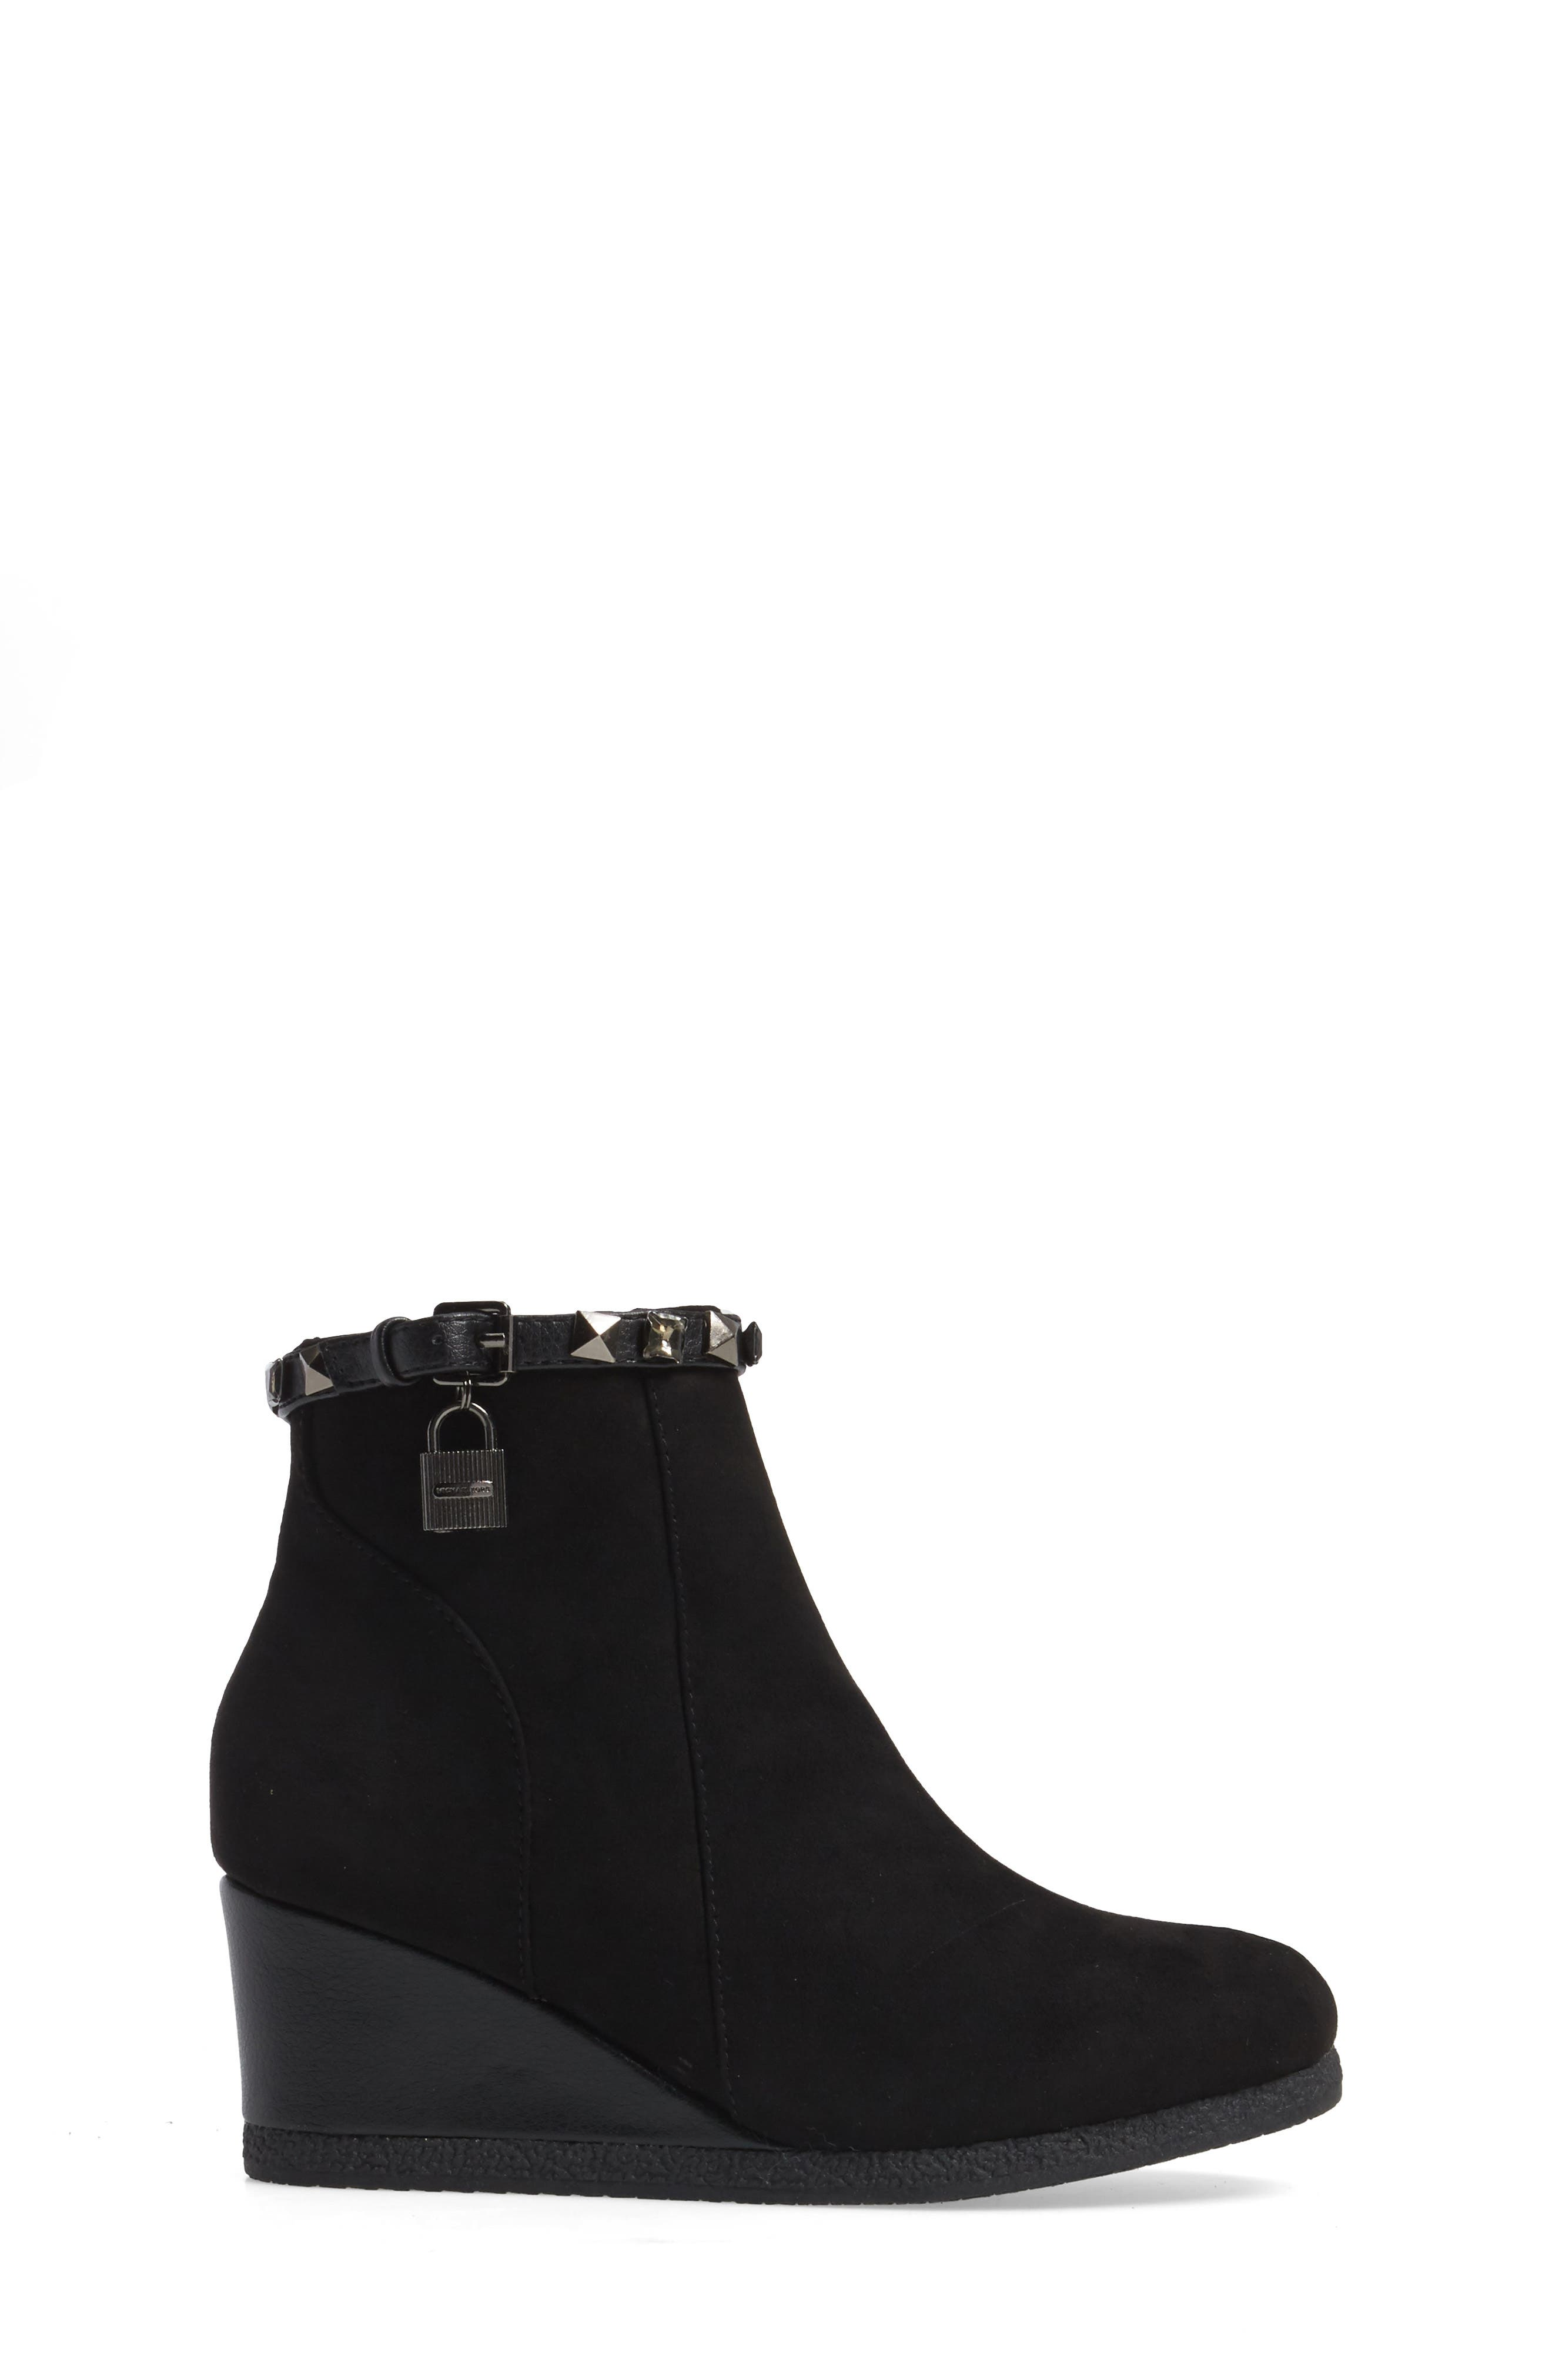 Cara Key Studded Wedge Bootie,                             Alternate thumbnail 3, color,                             Black